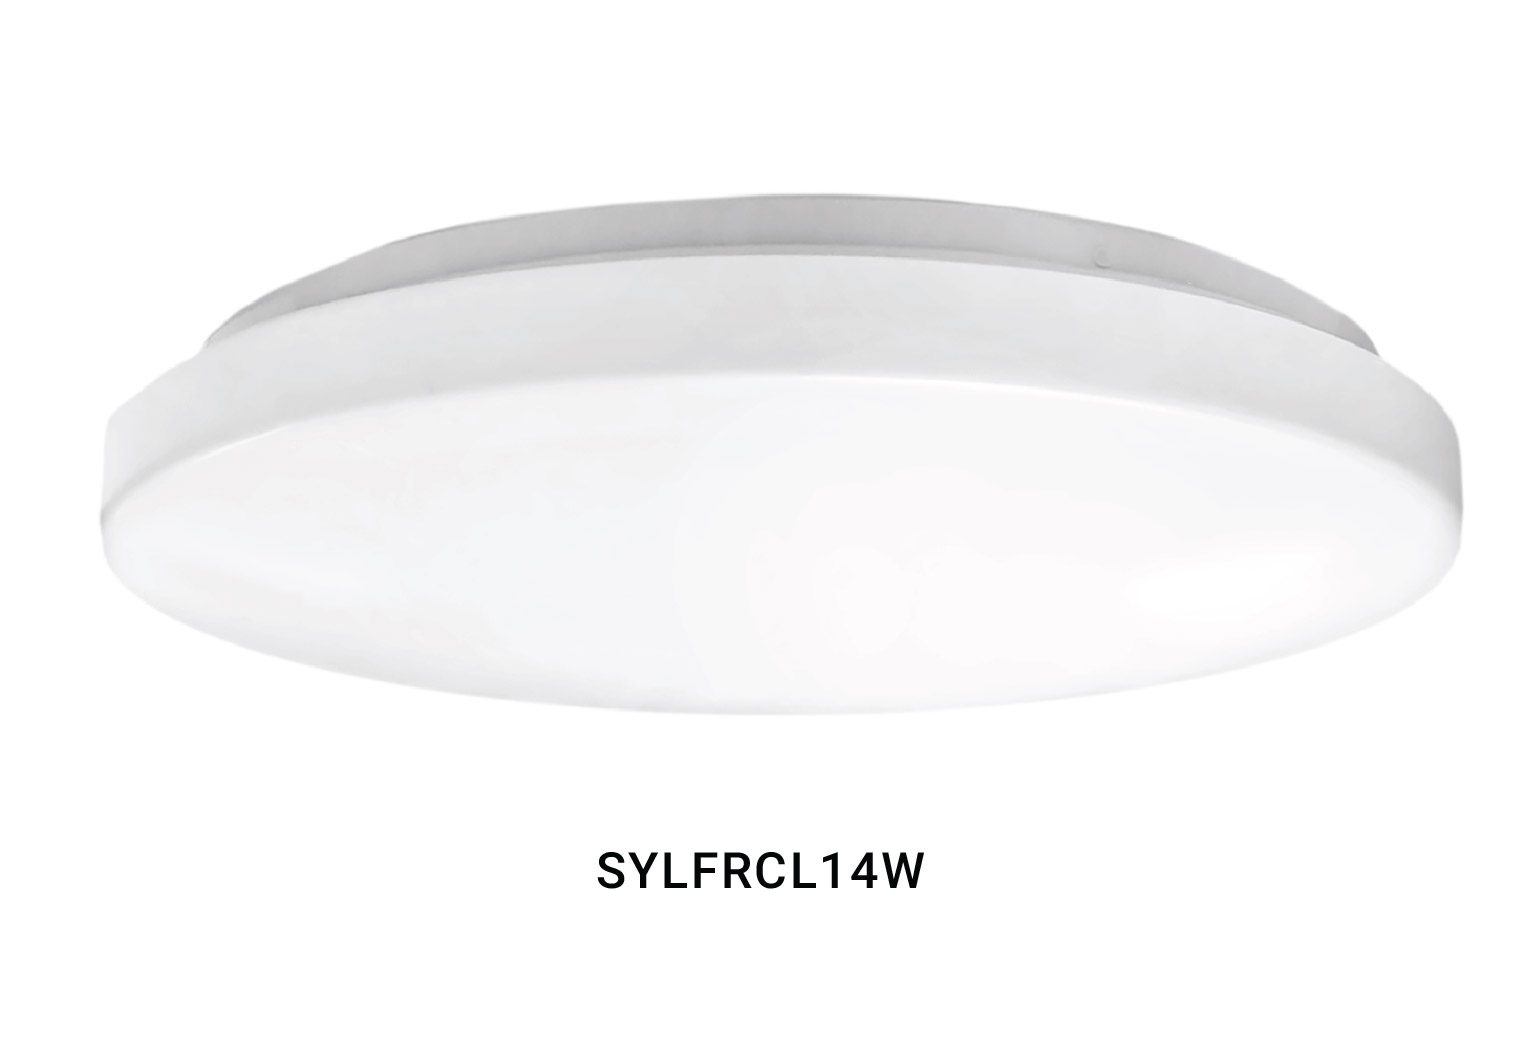 SYFRCL14W WHITE CEILING FITTING